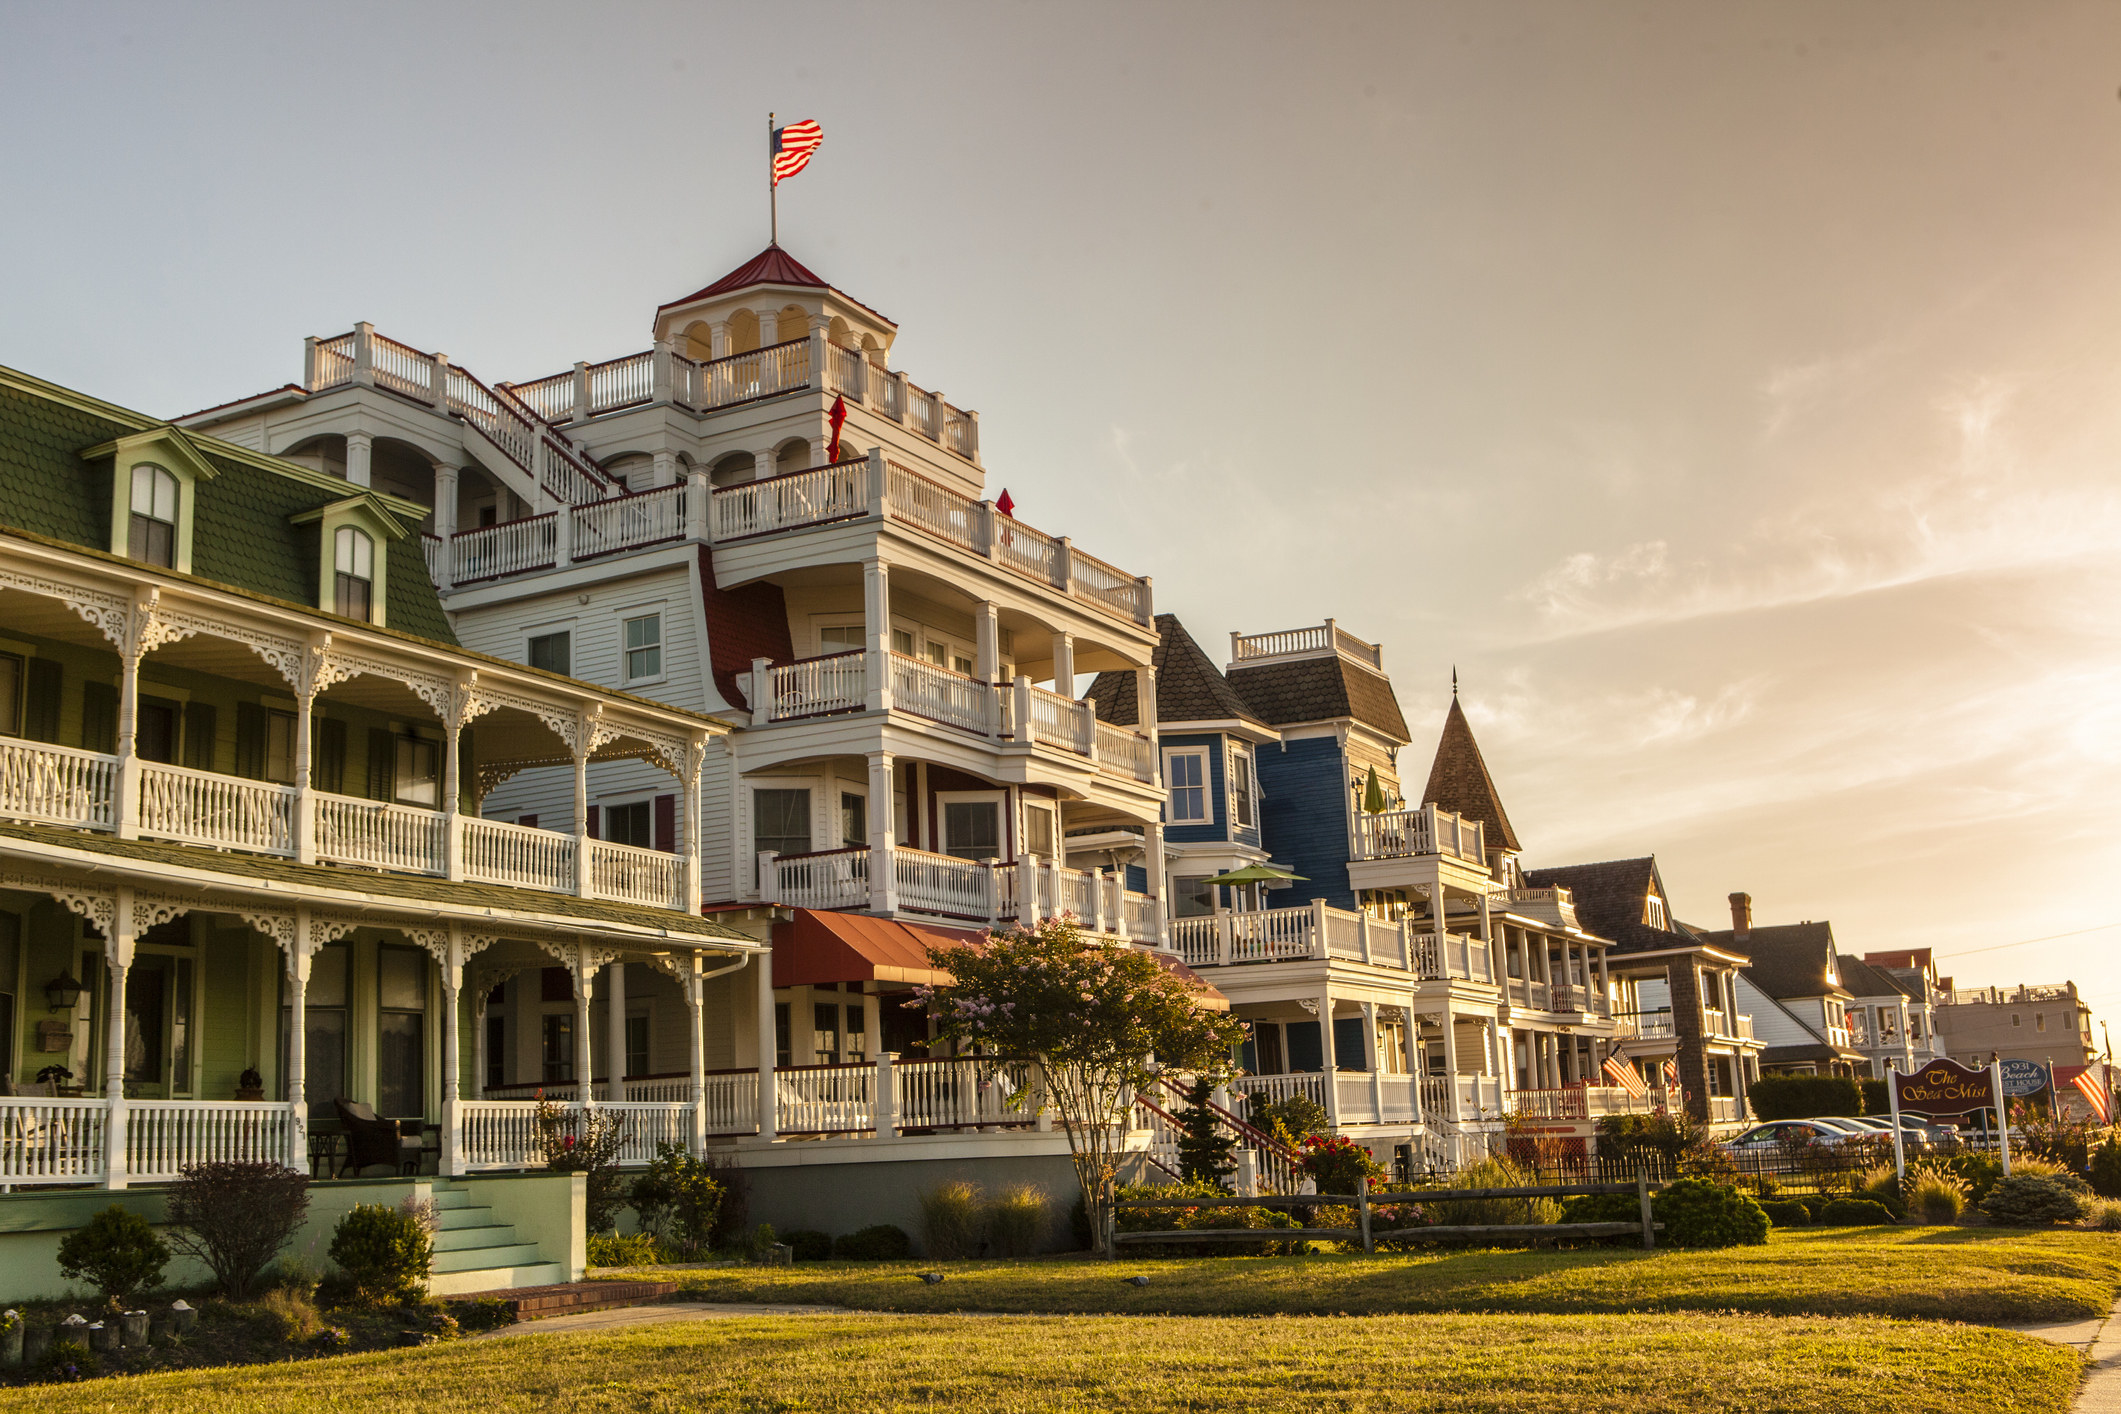 Victorian buildings in Cape May, NJ.